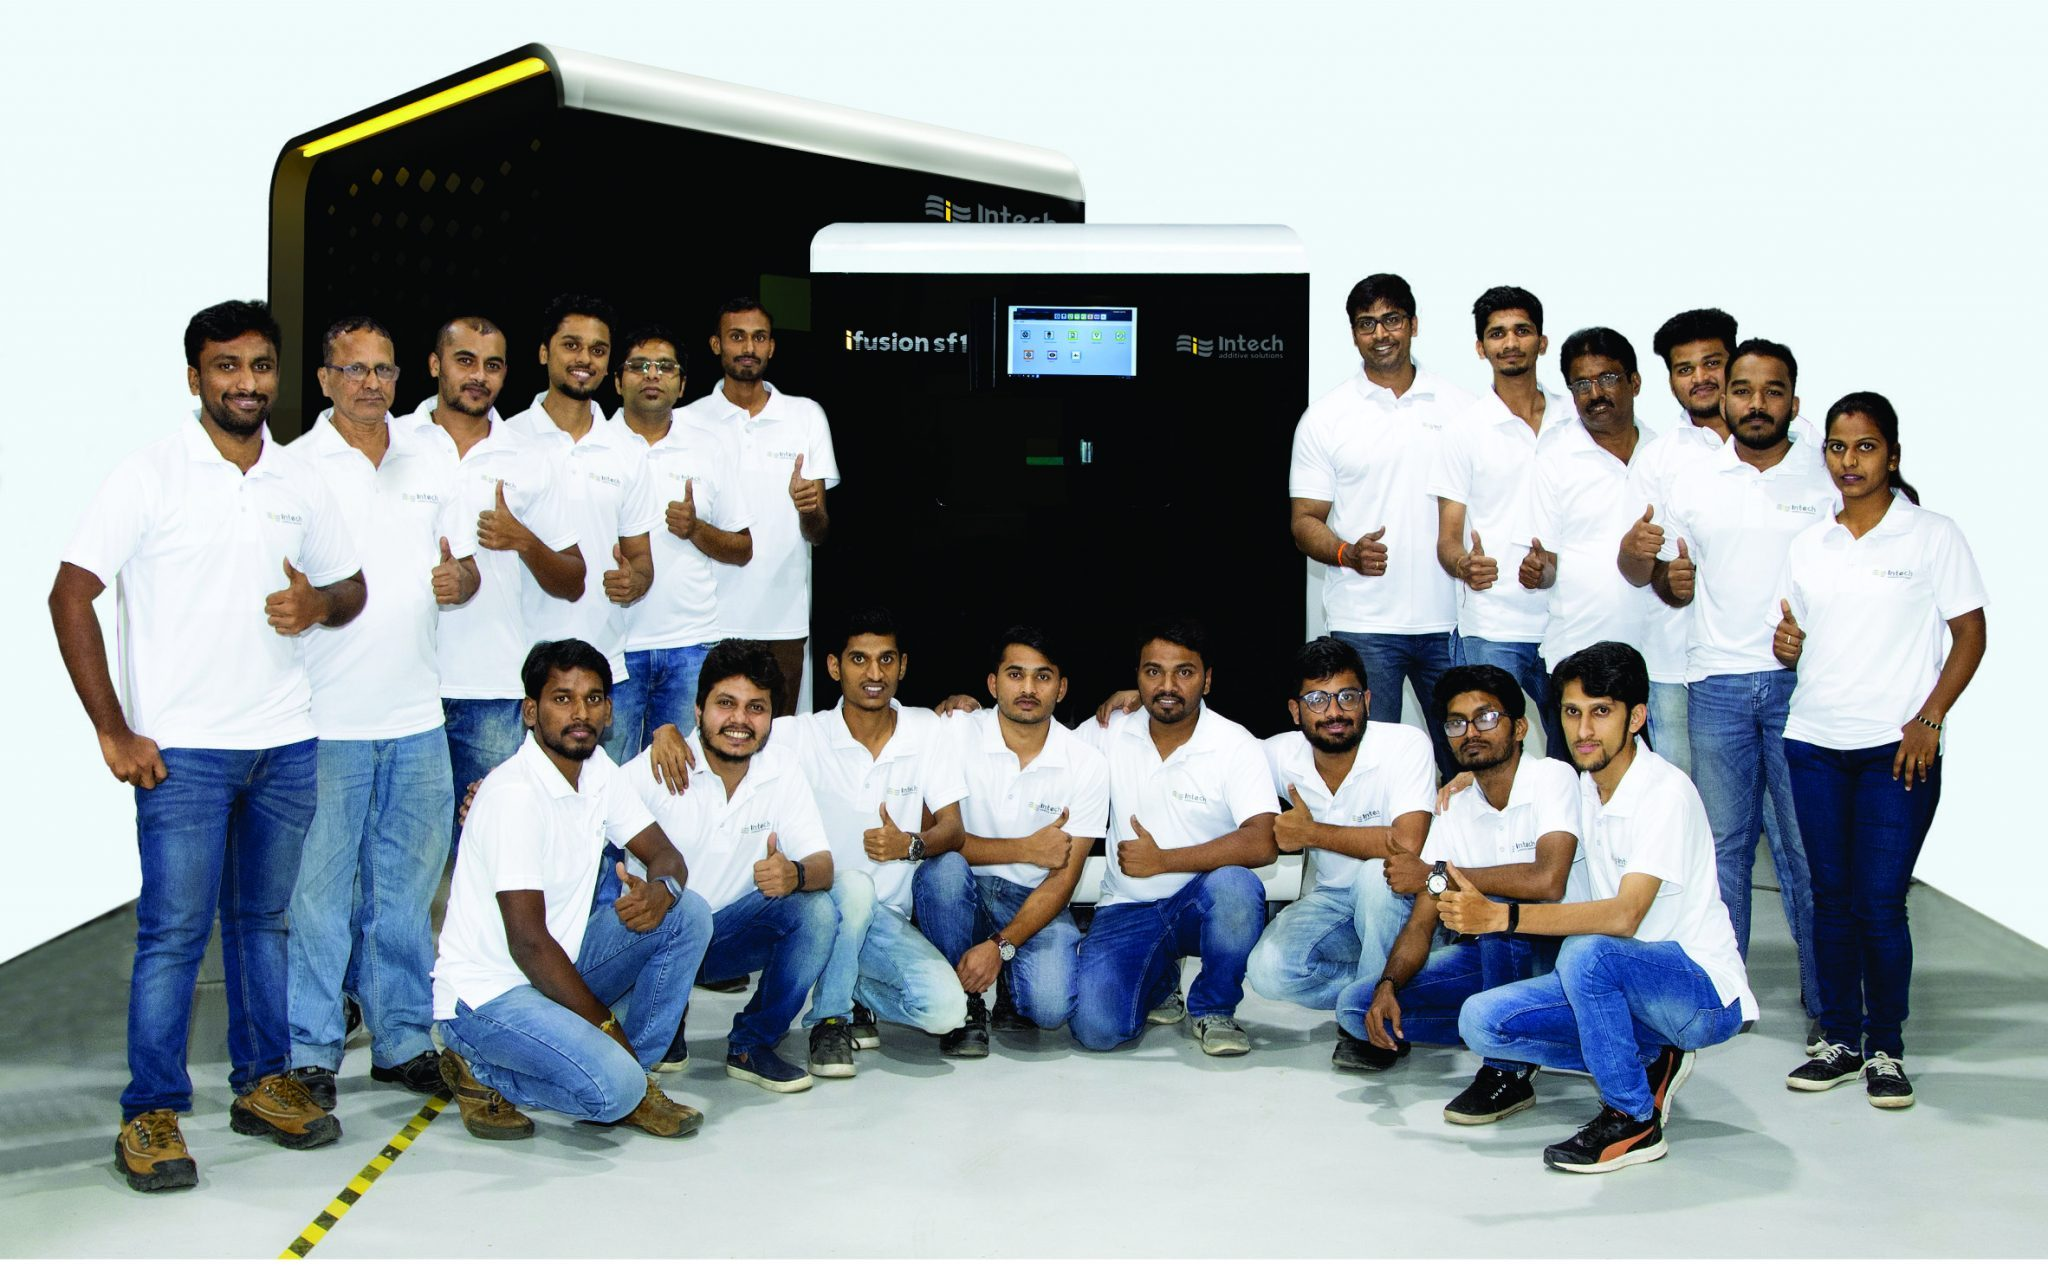 The Intech team with the iFusion SF1 and LFMulti. Photo via Intech